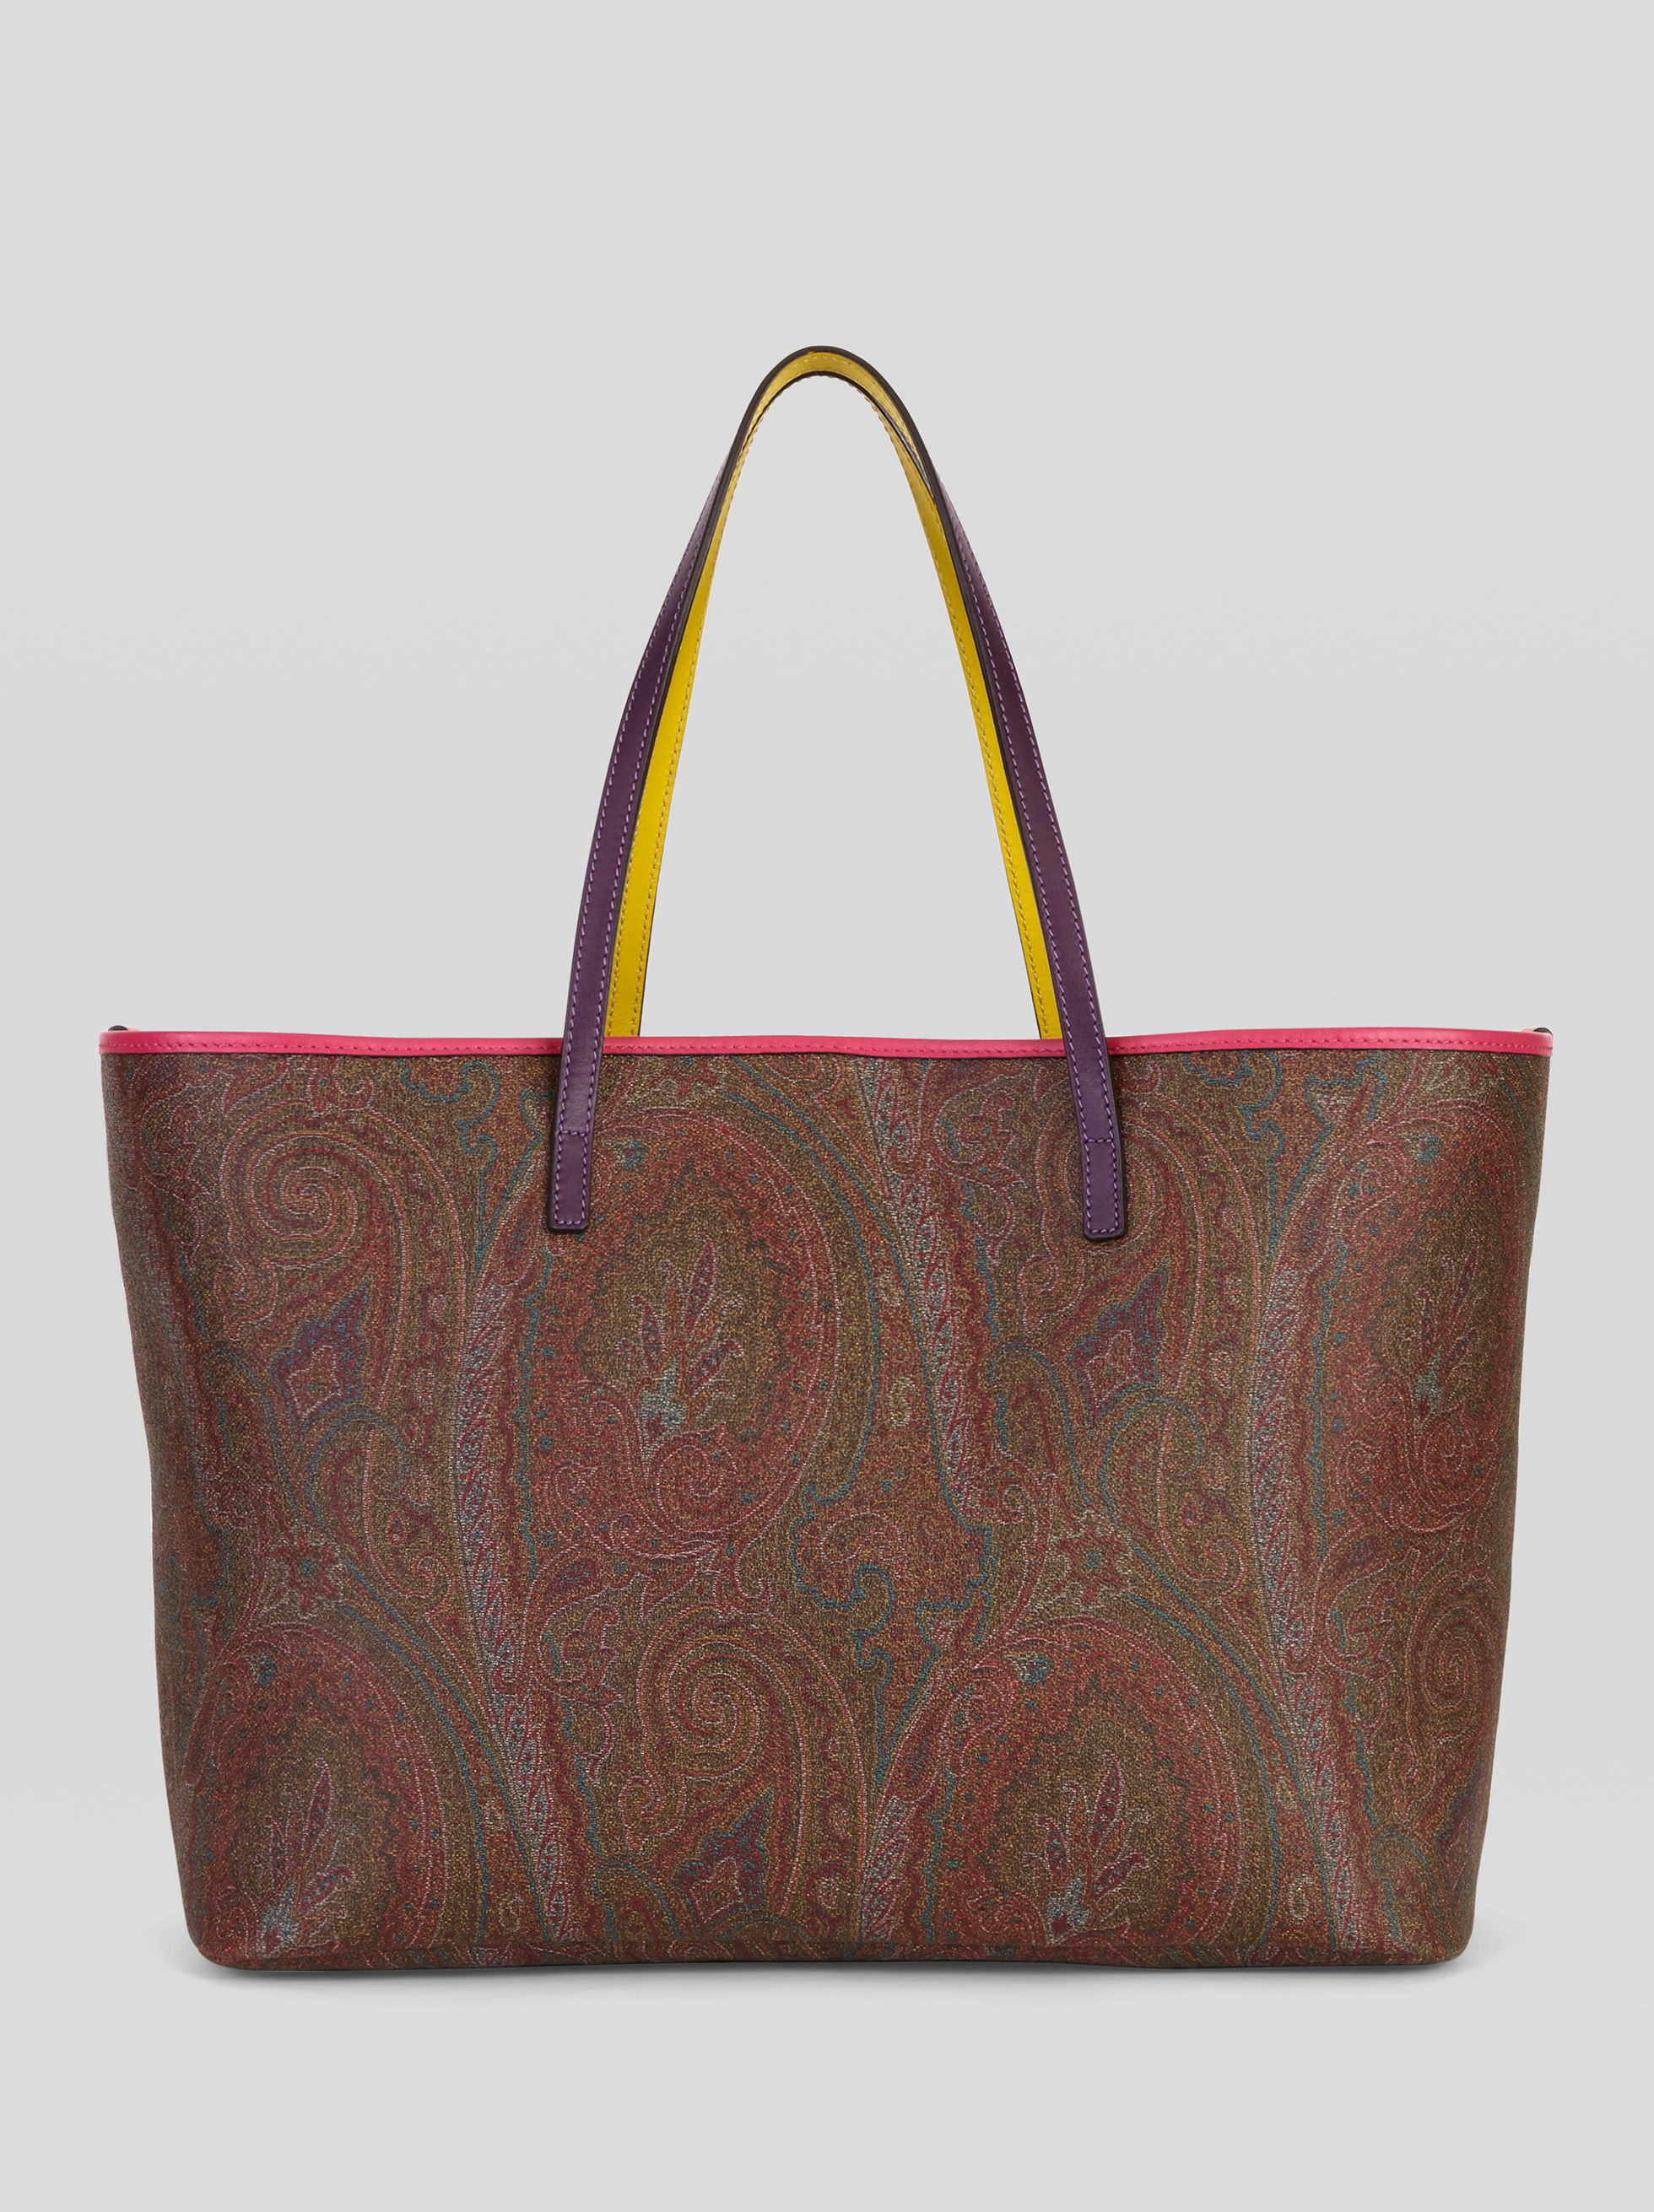 LARGE PAISLEY TOTE BAG WITH POCHETTE